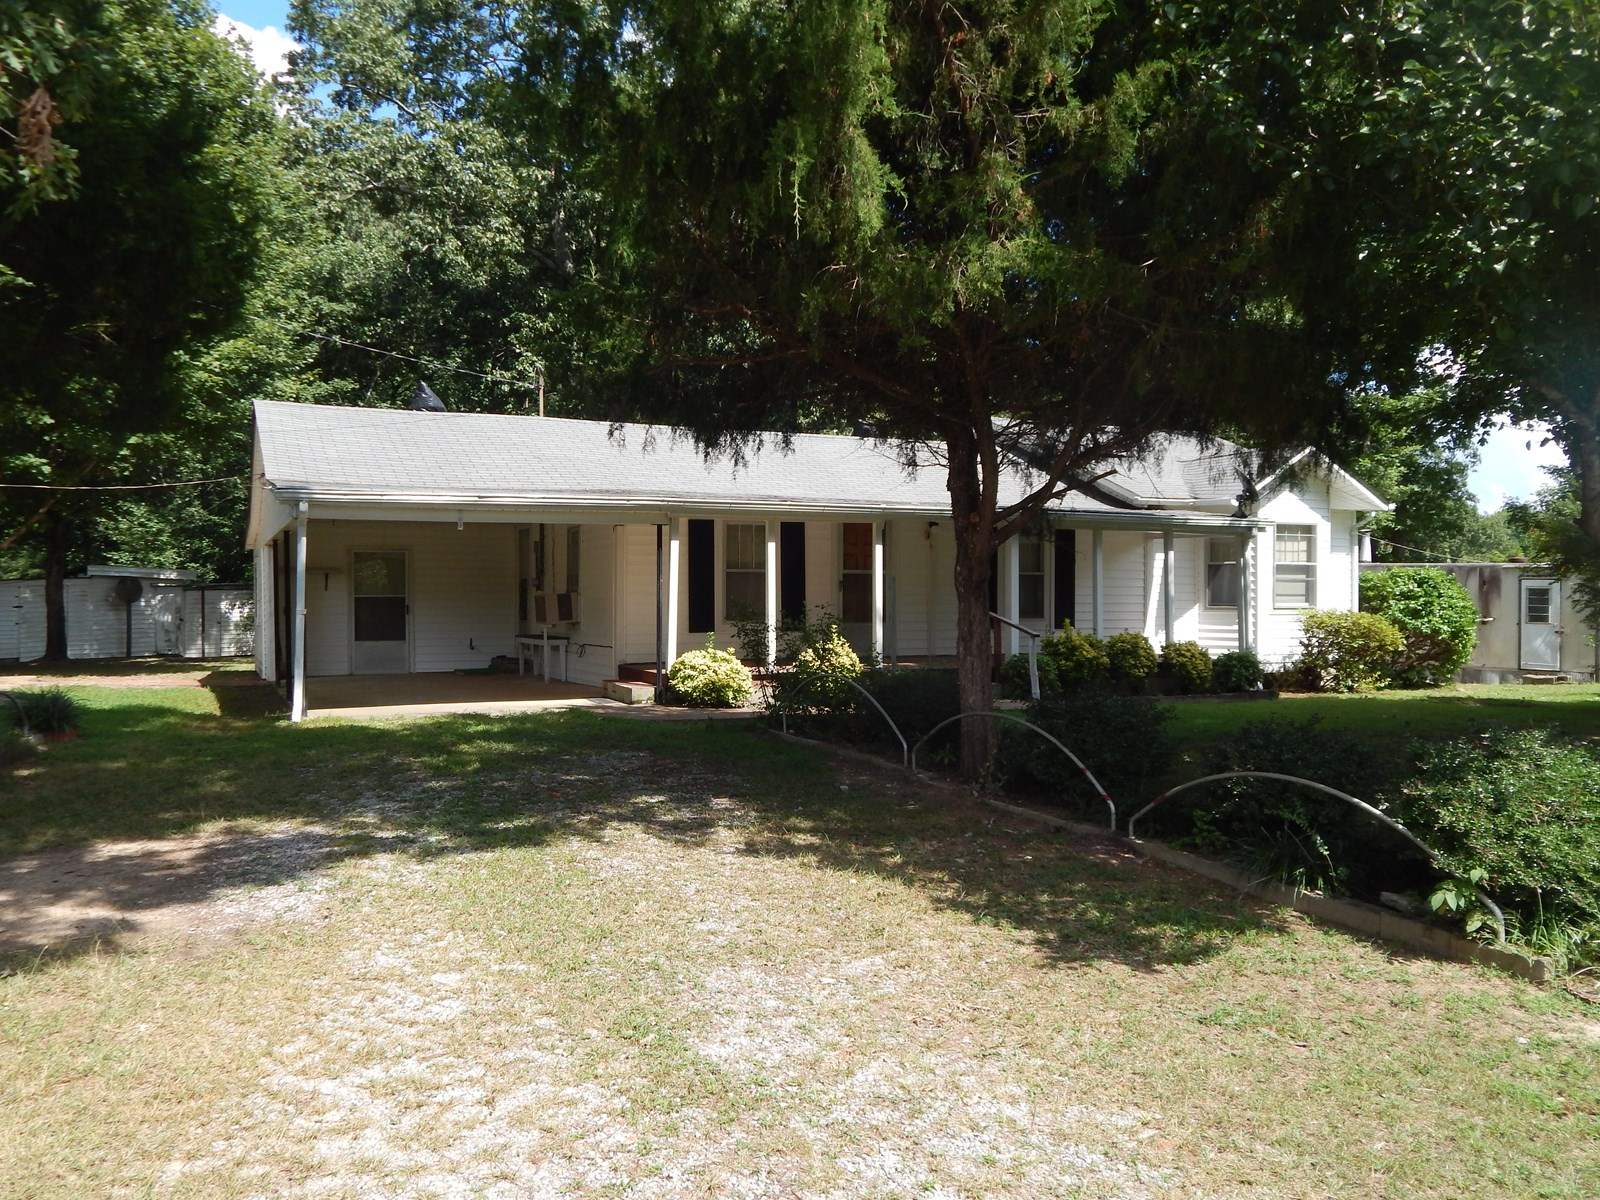 Tennessee Country Home, 2 Bed, 1 Bath on 1 Acre!!